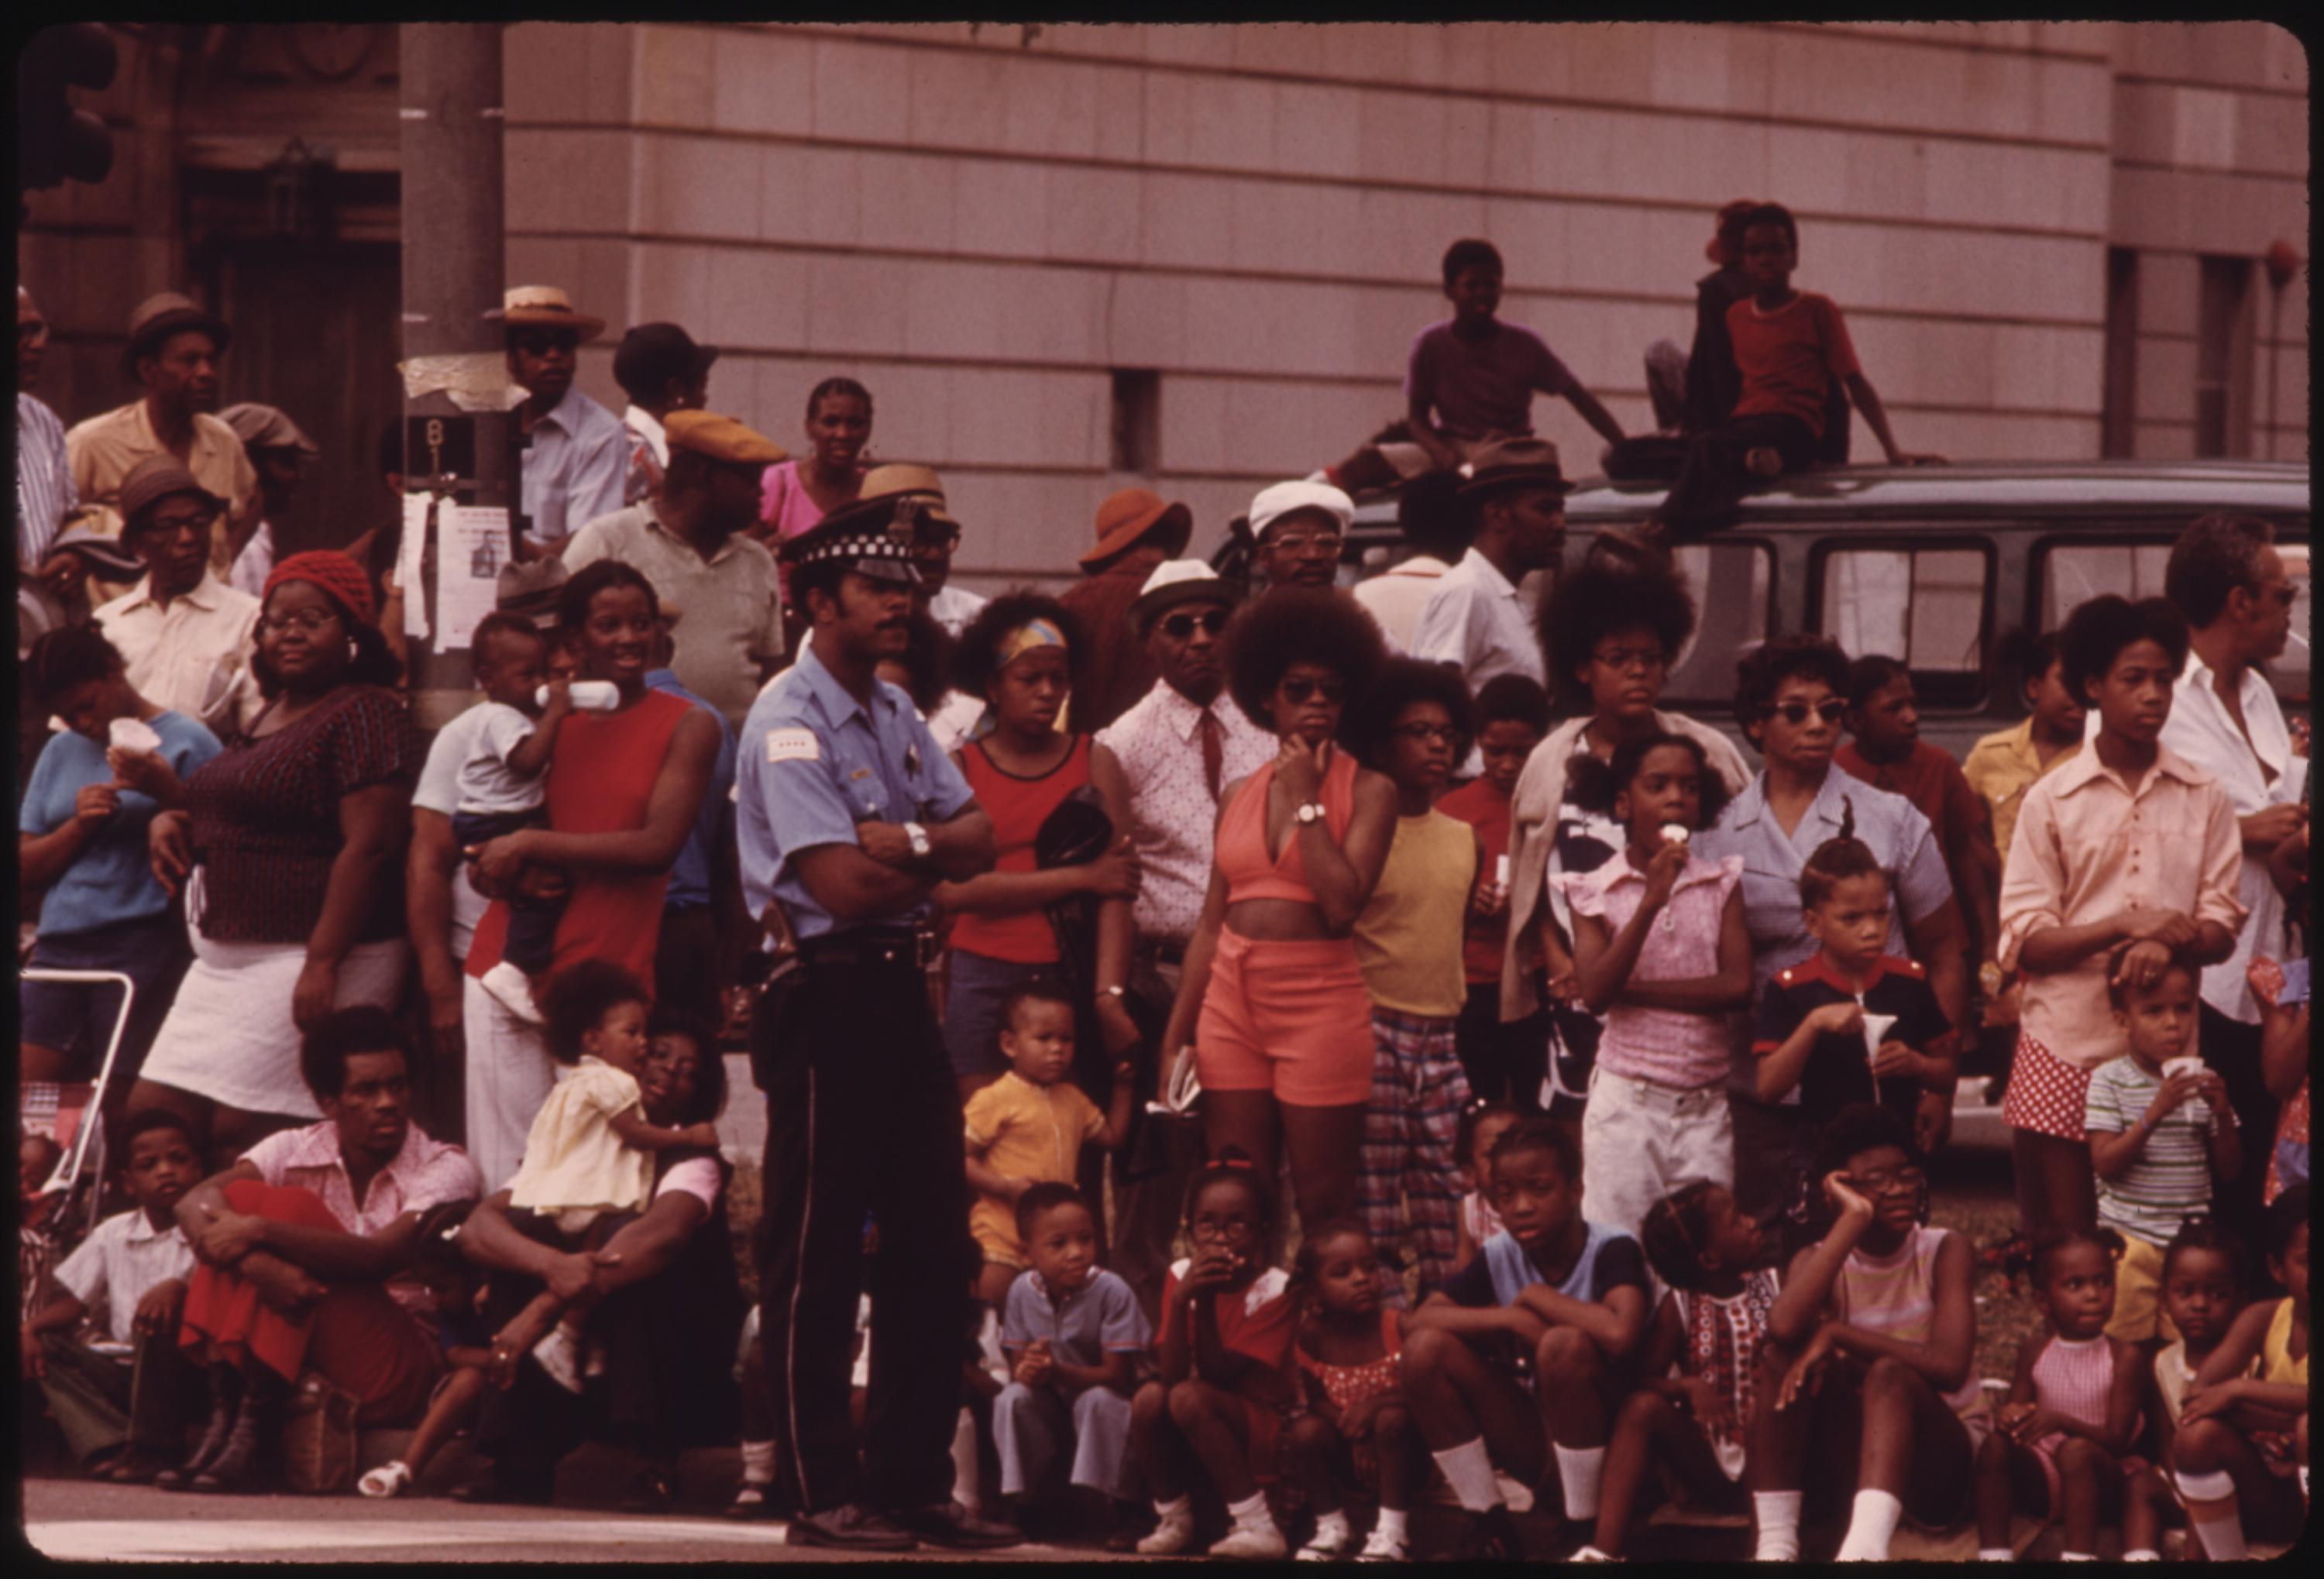 Members Of Chicago's South Side Black Community Line A Portion Of Dr. Martin L. King Jr. Drive To Watch The Annual Bud Billiken Day Parade, 08:1973 John H. White